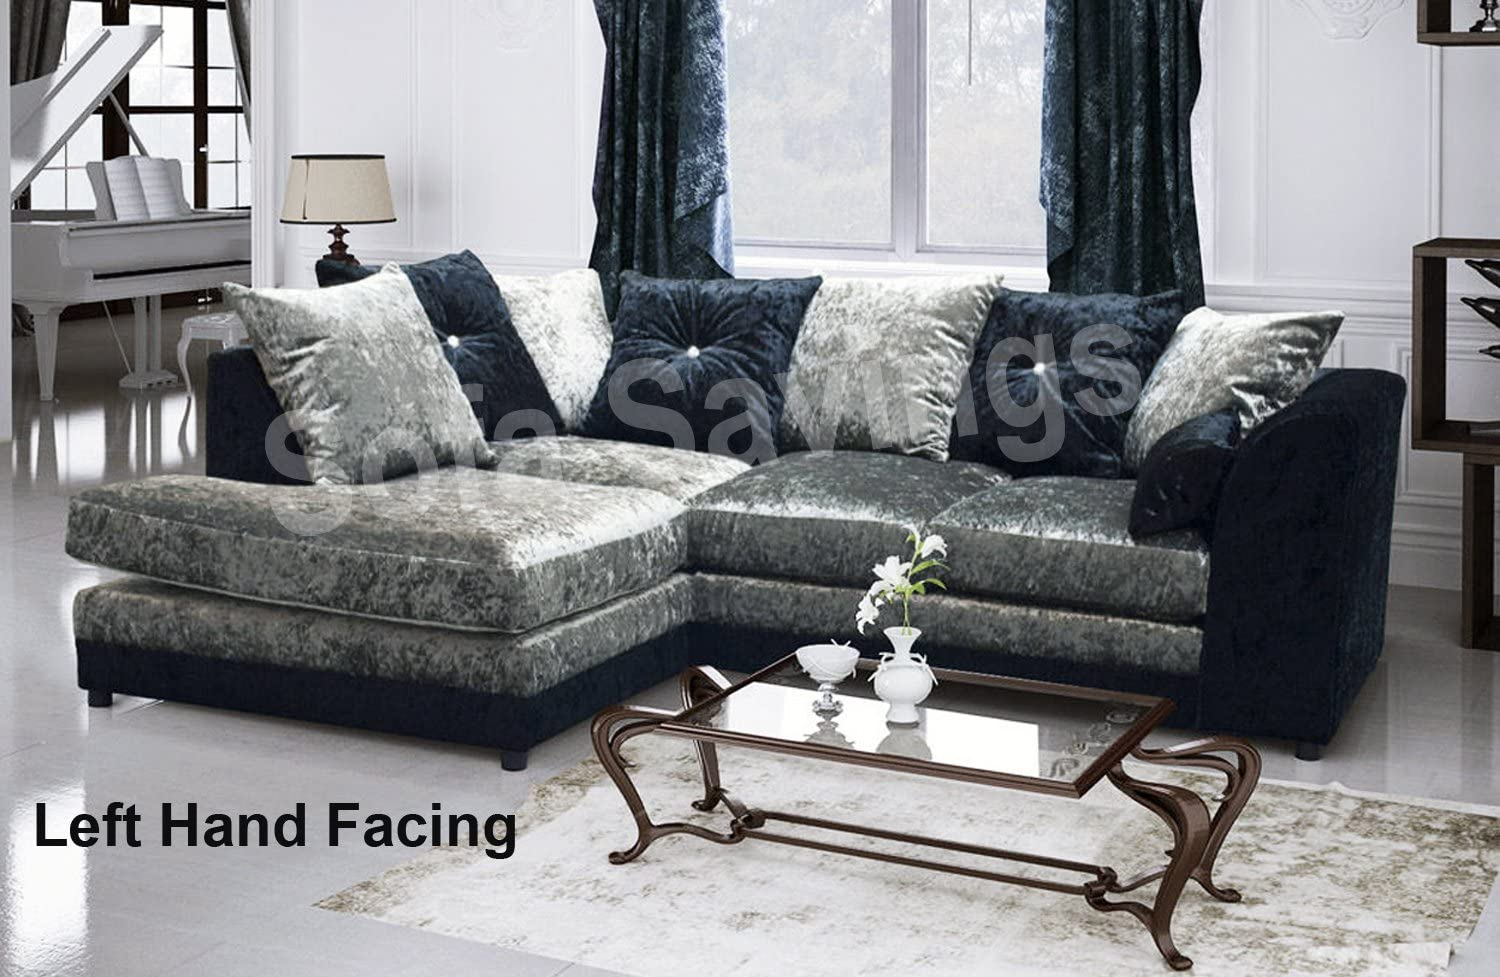 New Christine Crushed Velvet Fabric Corner Sofa Suite With Scatter Cushions Black And Silver Left Hand Facing Amazon Co Uk Kitchen Home